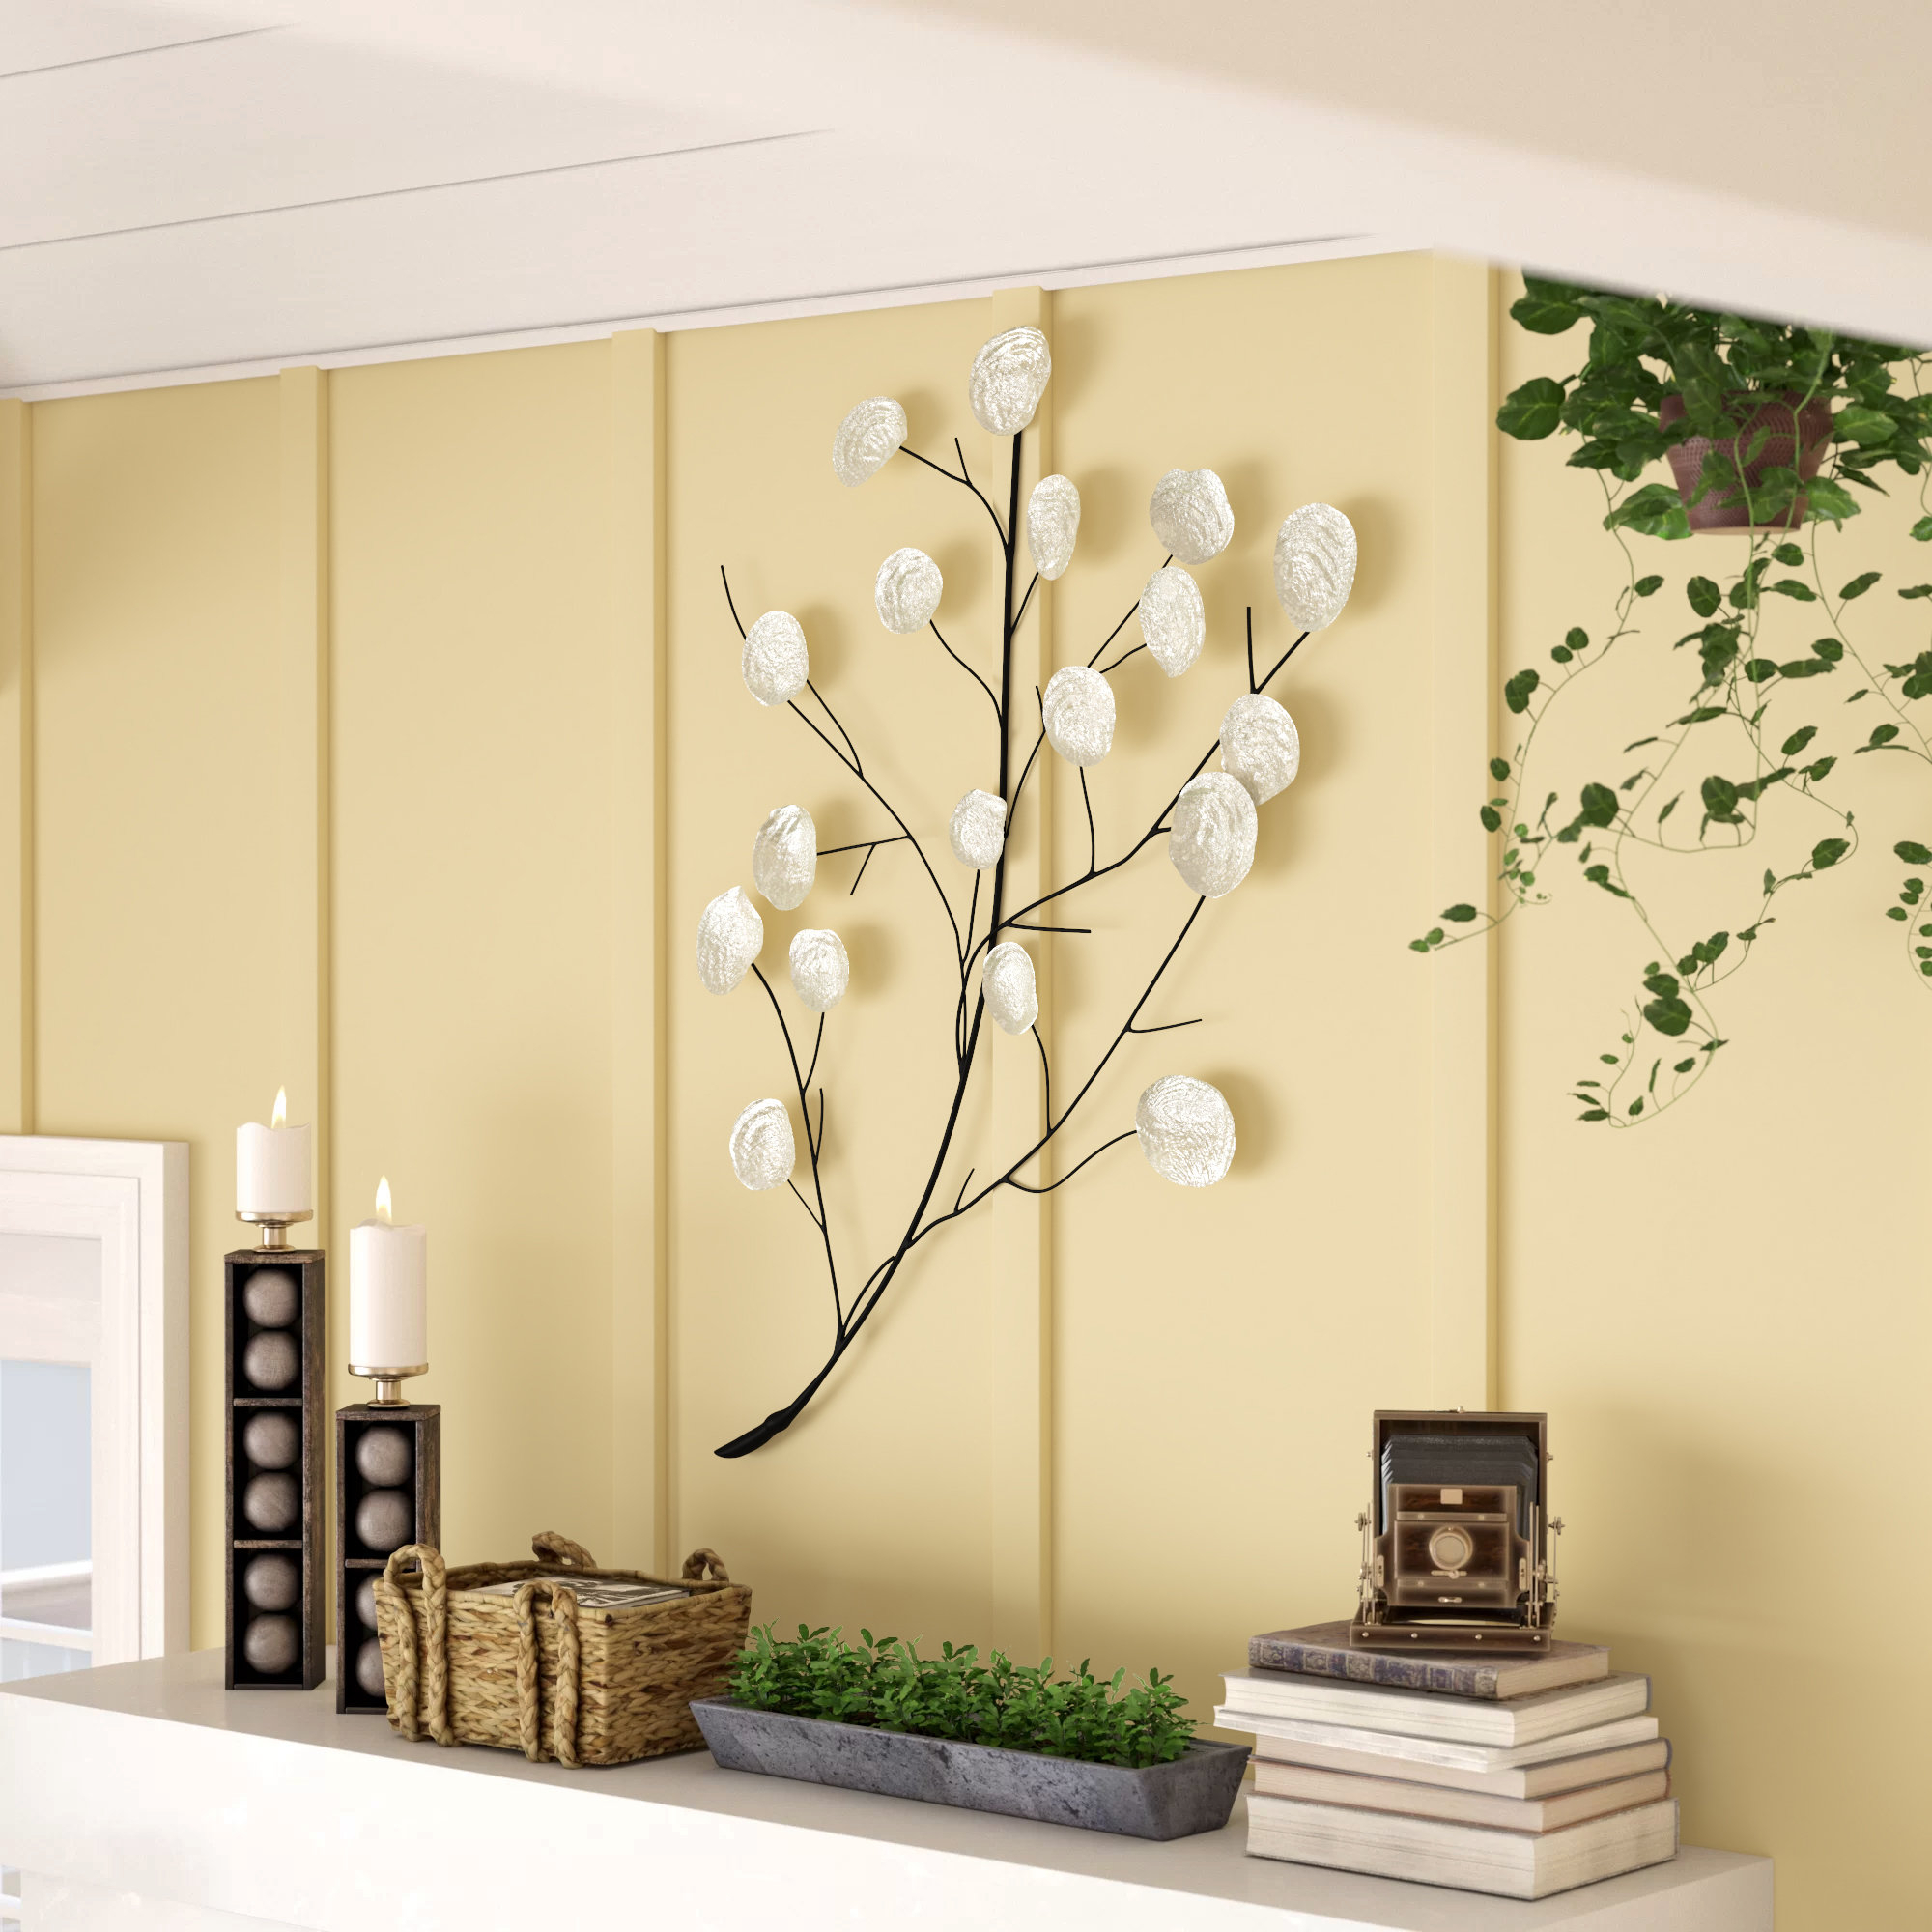 Brattea Leaf Wall Decor | Wayfair With Regard To Desford Leaf Wall Decor By Charlton Home (View 18 of 30)